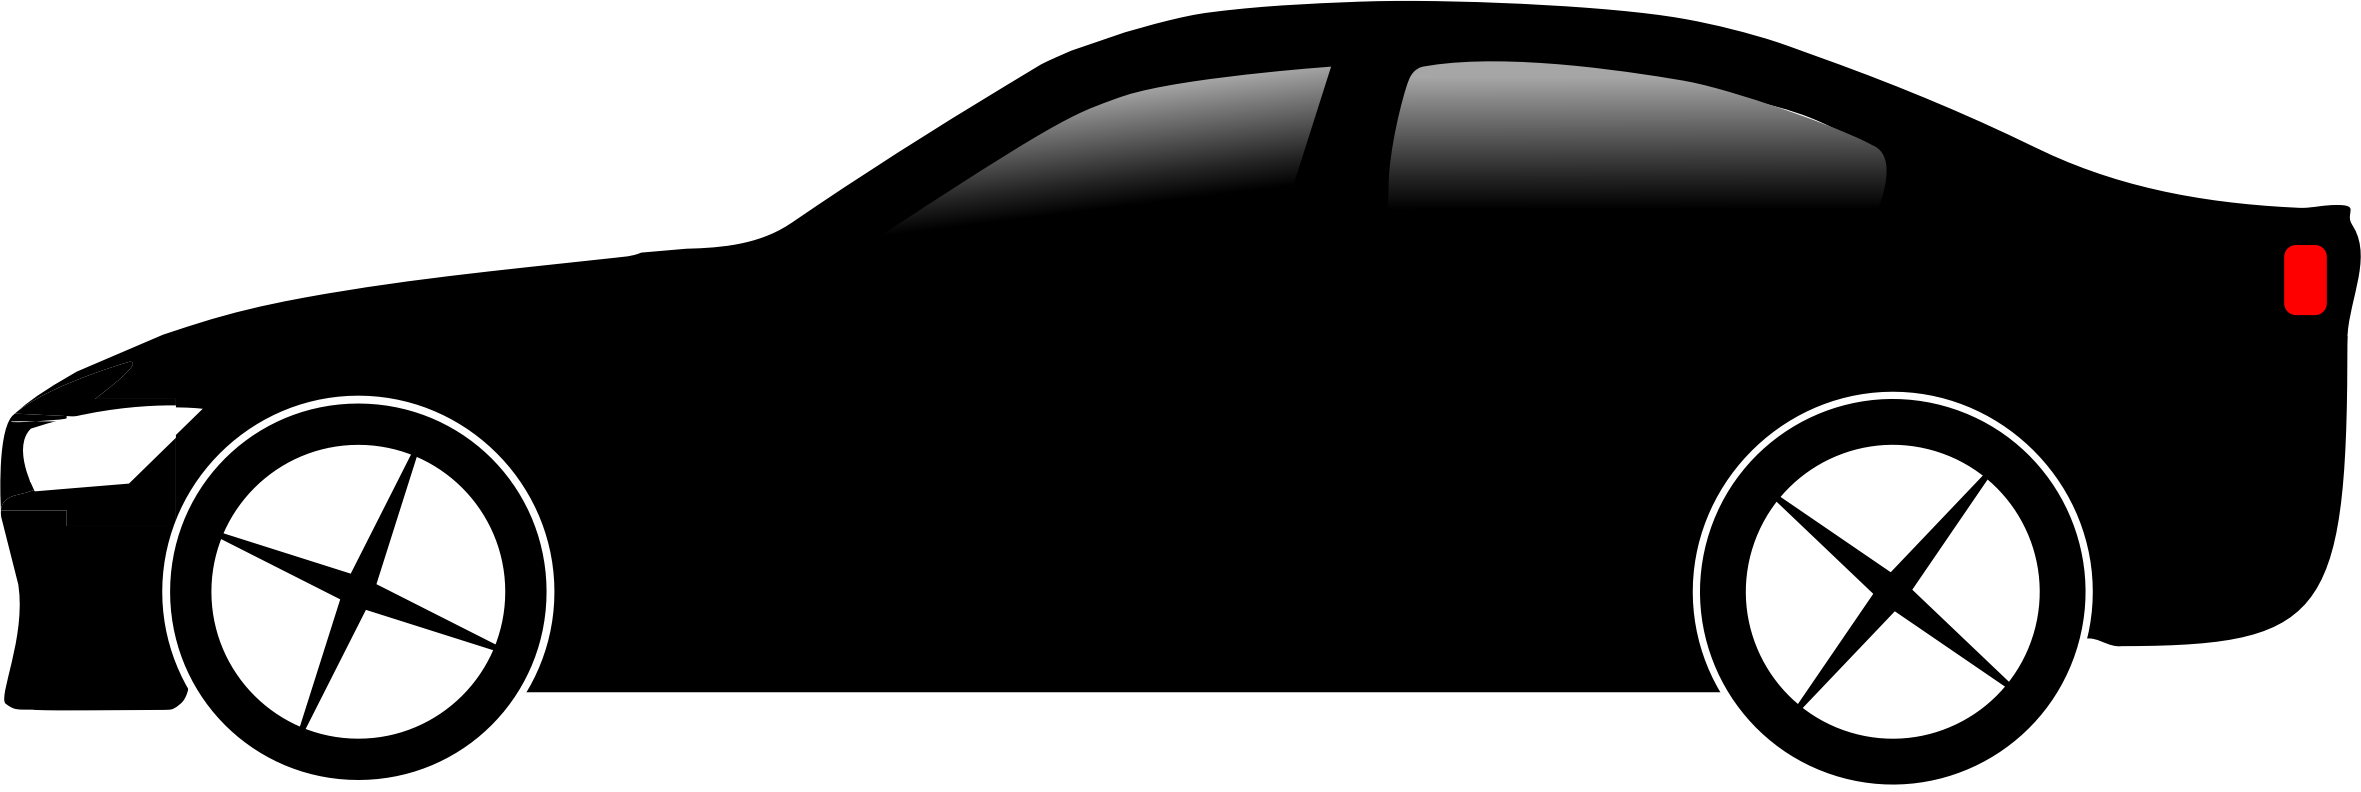 Car black and white. Clipart cars home